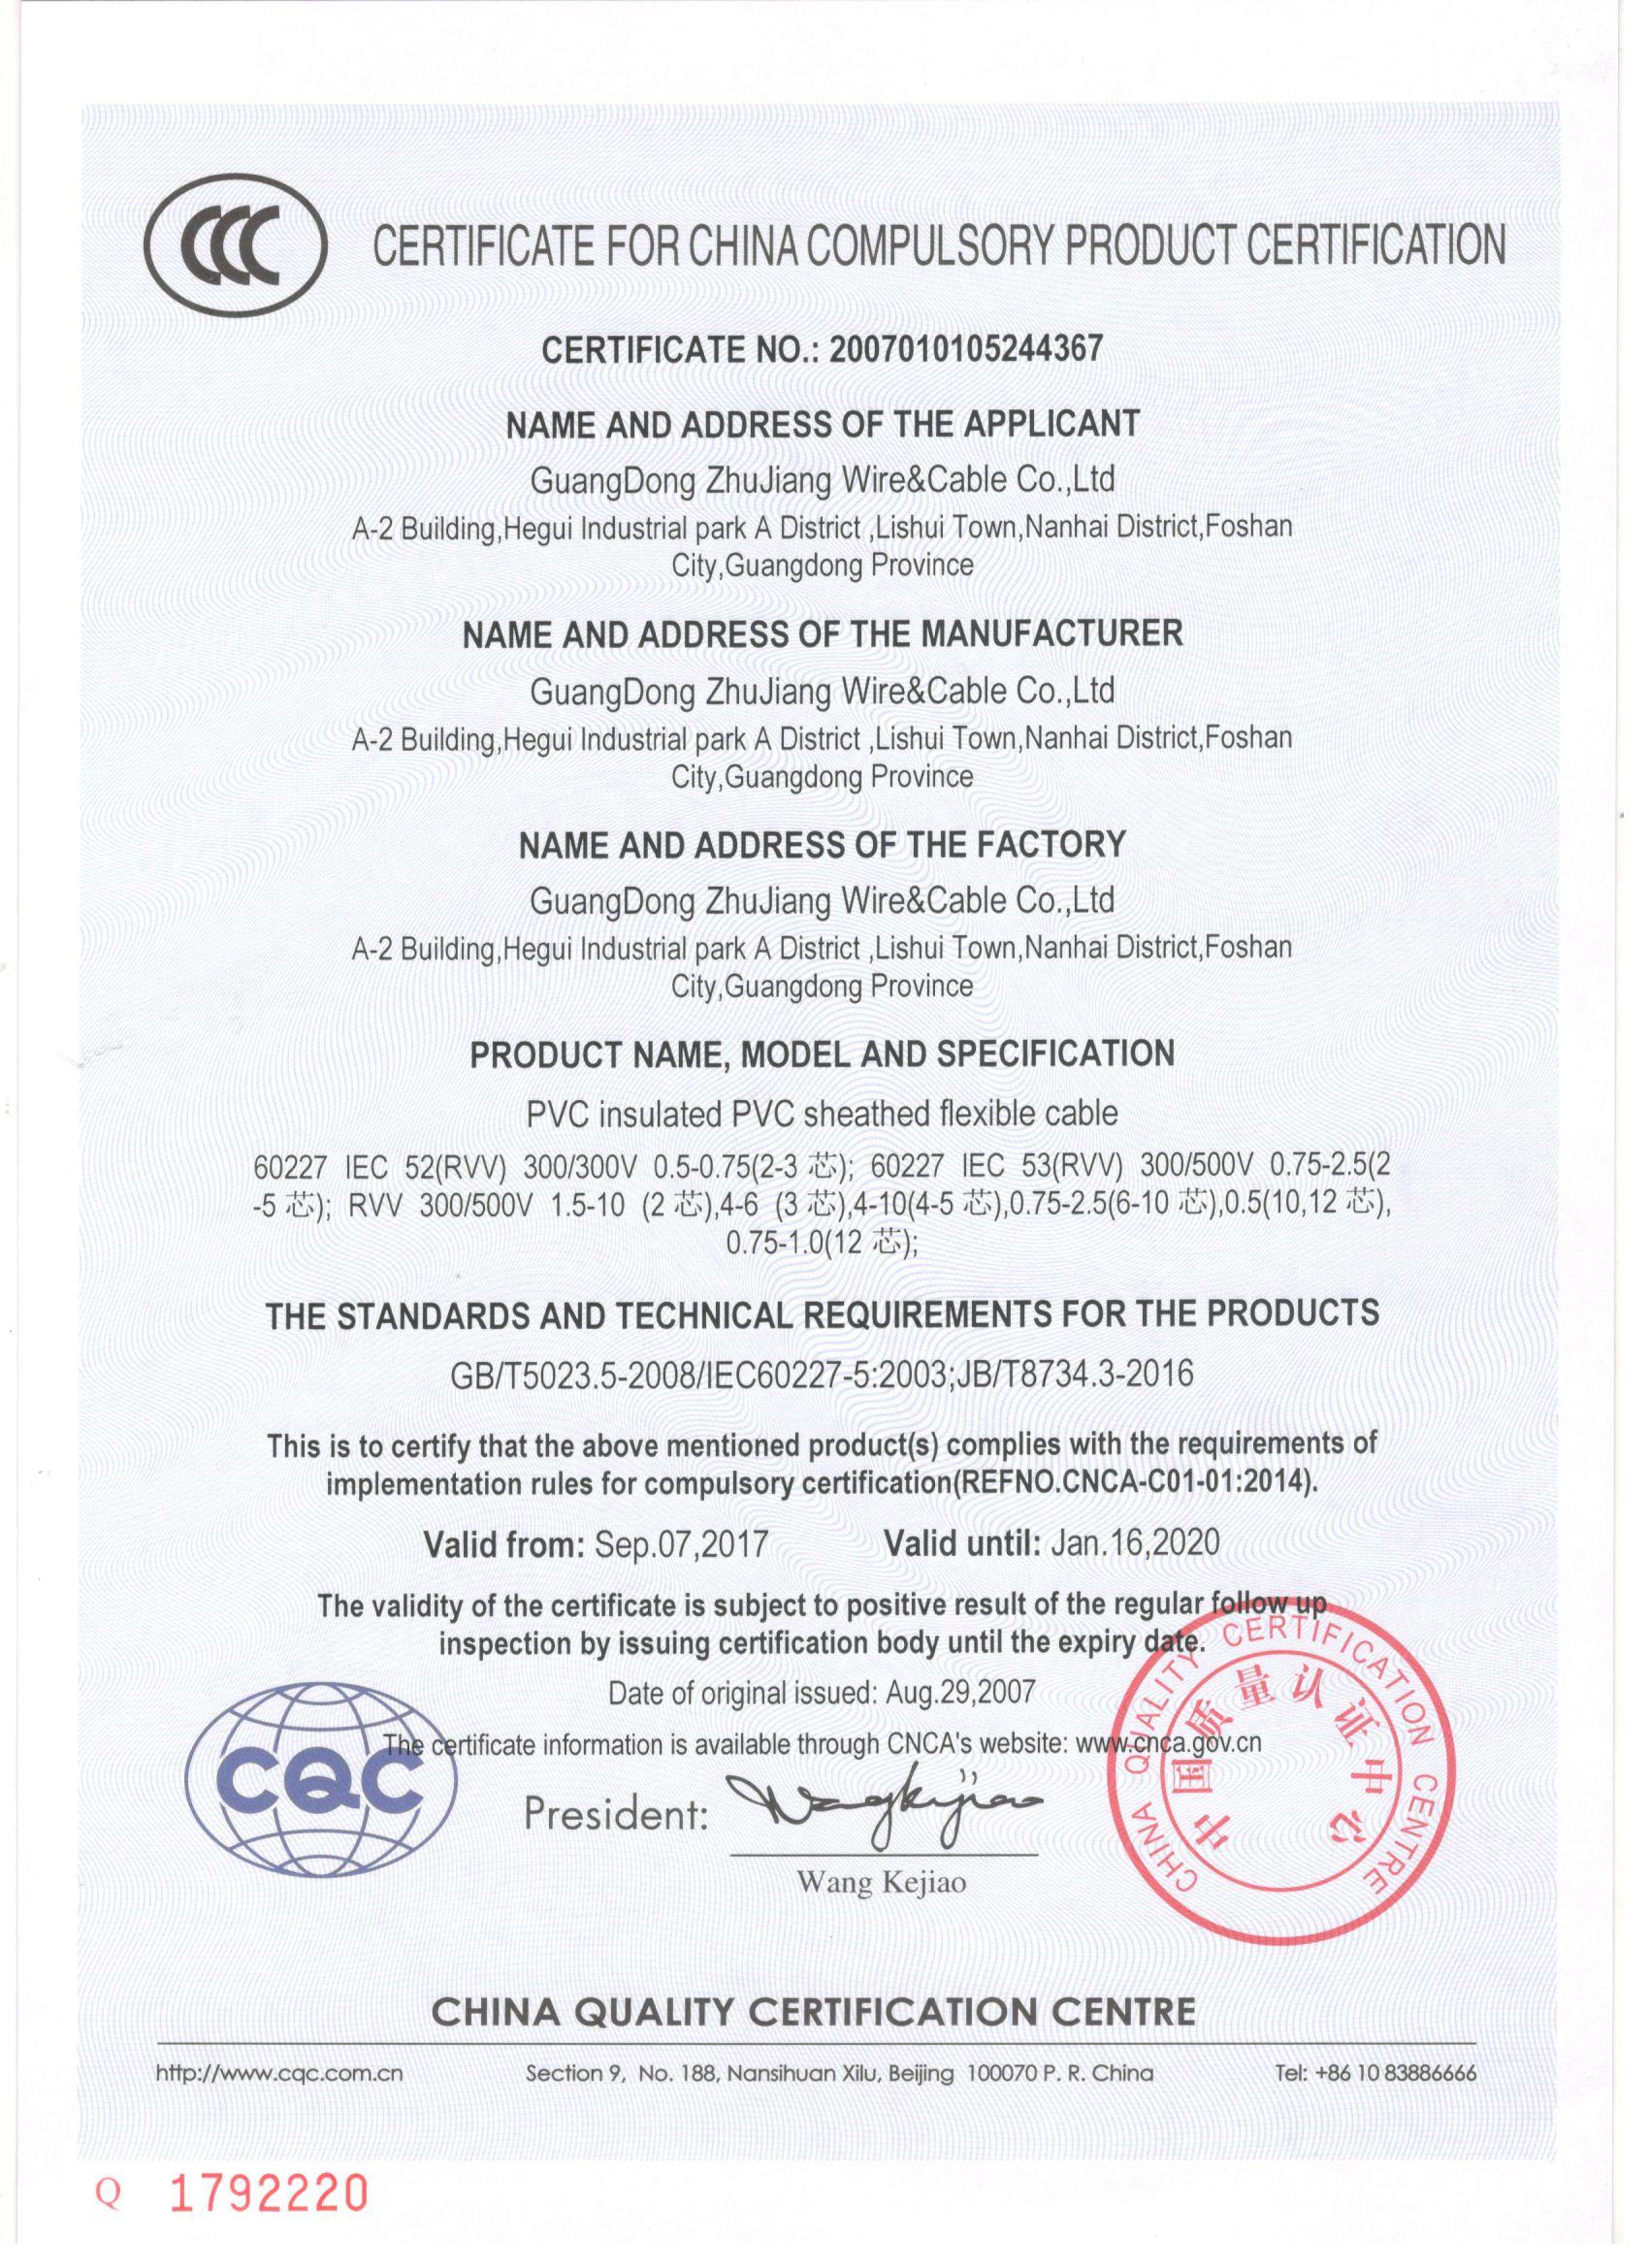 3C National Compulsory Product Certification (367-English)